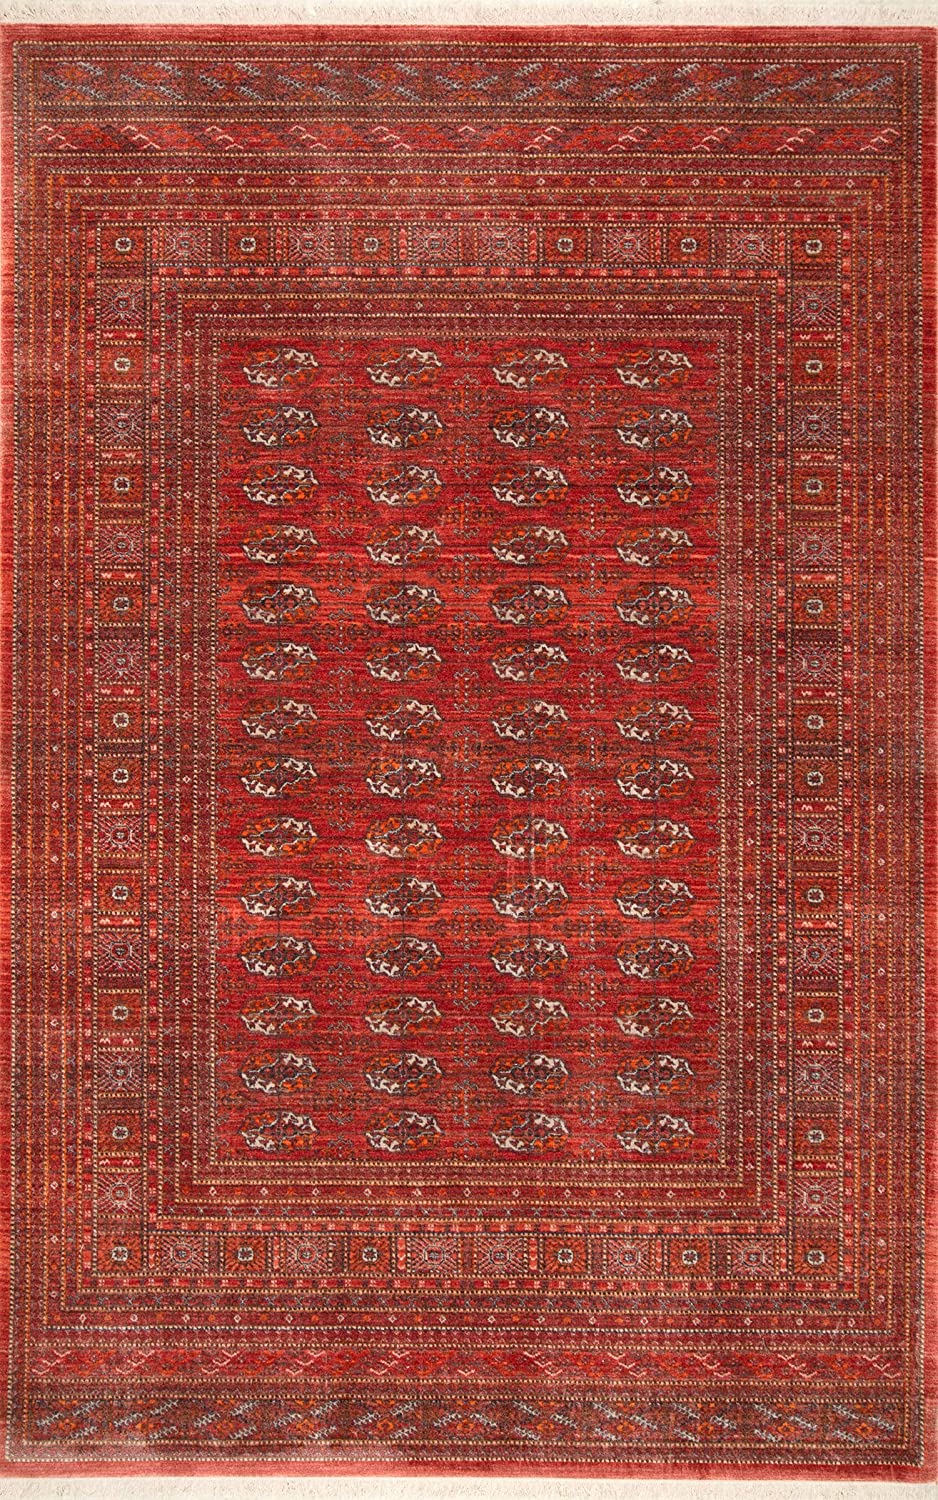 nuLOOM Directly managed store Renaissance Giovanna Attention brand Area Rug Red 7' 9